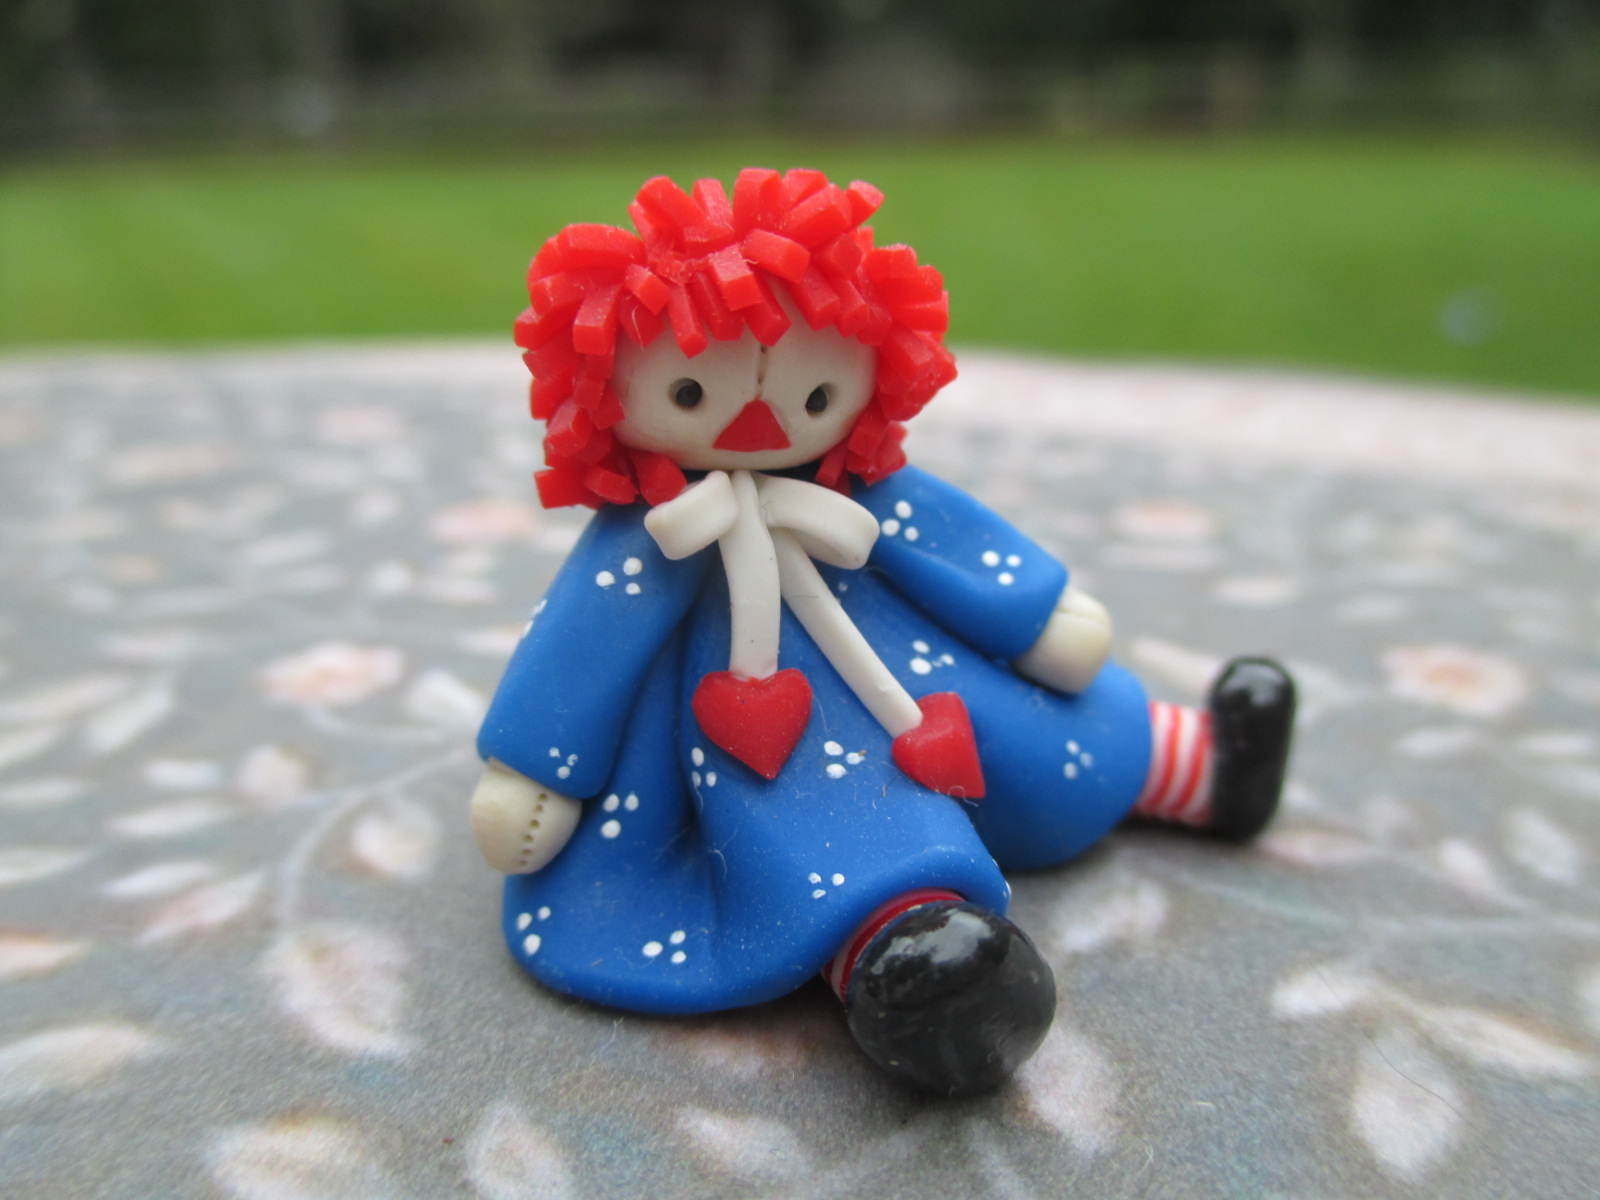 Handmade Raggedy Ann From Clay/Fimo Sitting & Wearing Dress